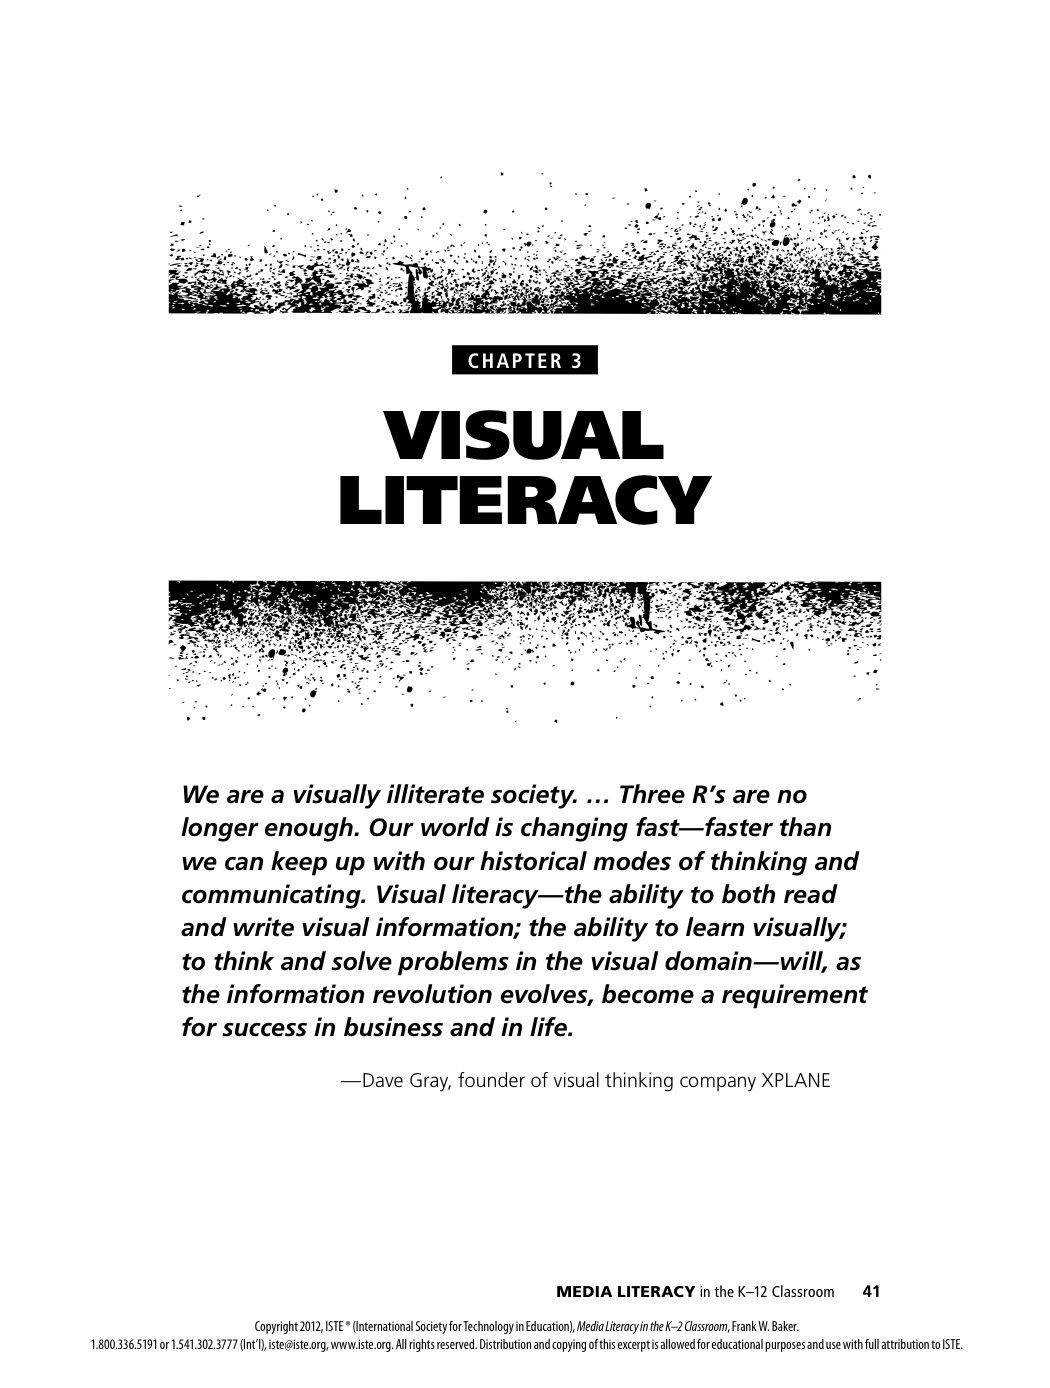 Book Chapter Excerpt Explores Visual Literacy Inquiry